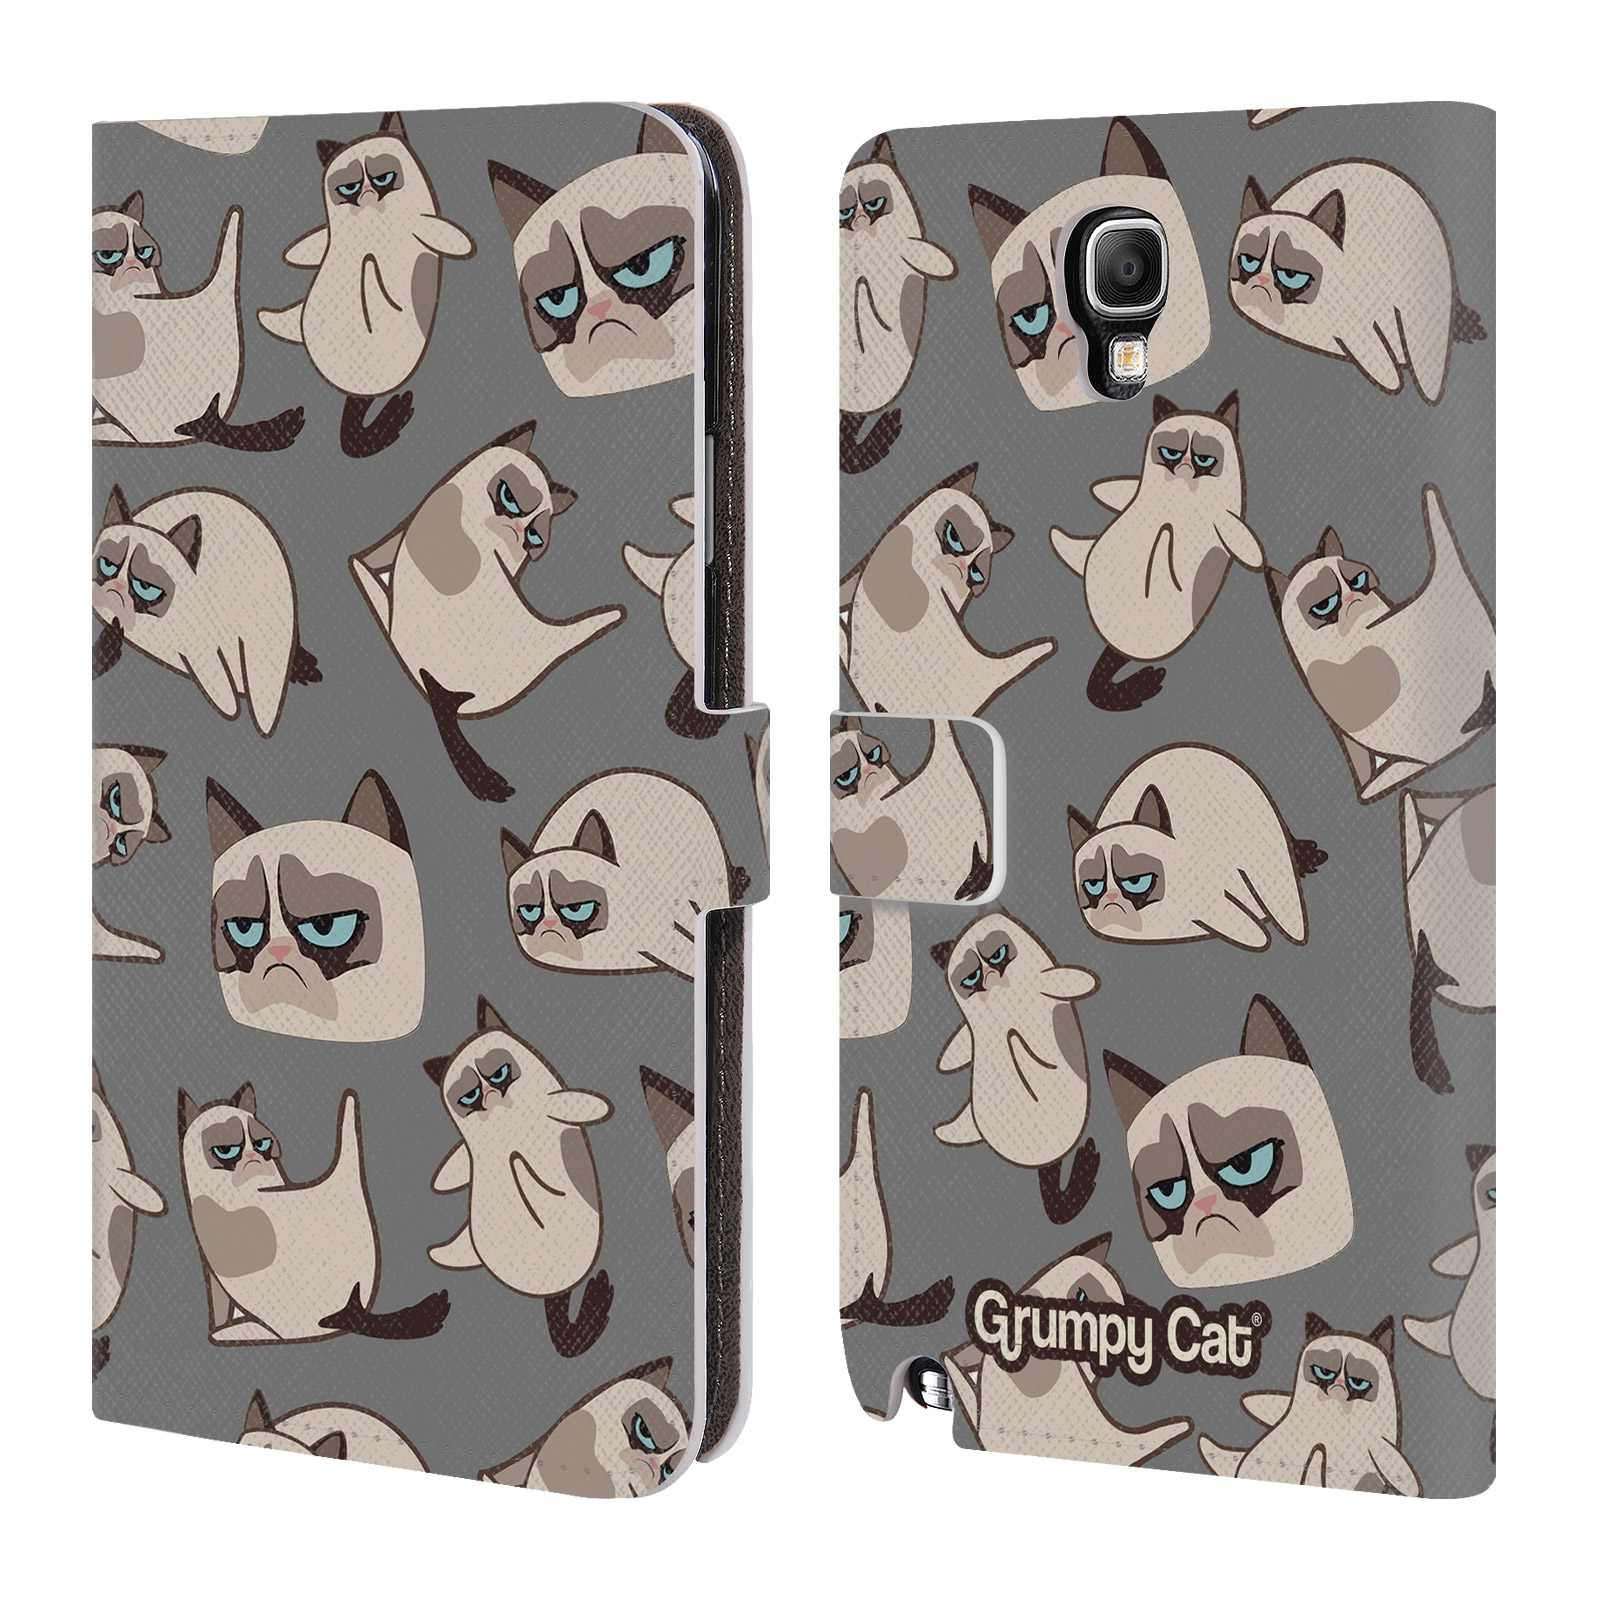 OFFICIAL GRUMPY CAT GRUMPMOJI LEATHER BOOK WALLET CASE COVER FOR SAMSUNG PHONES 1